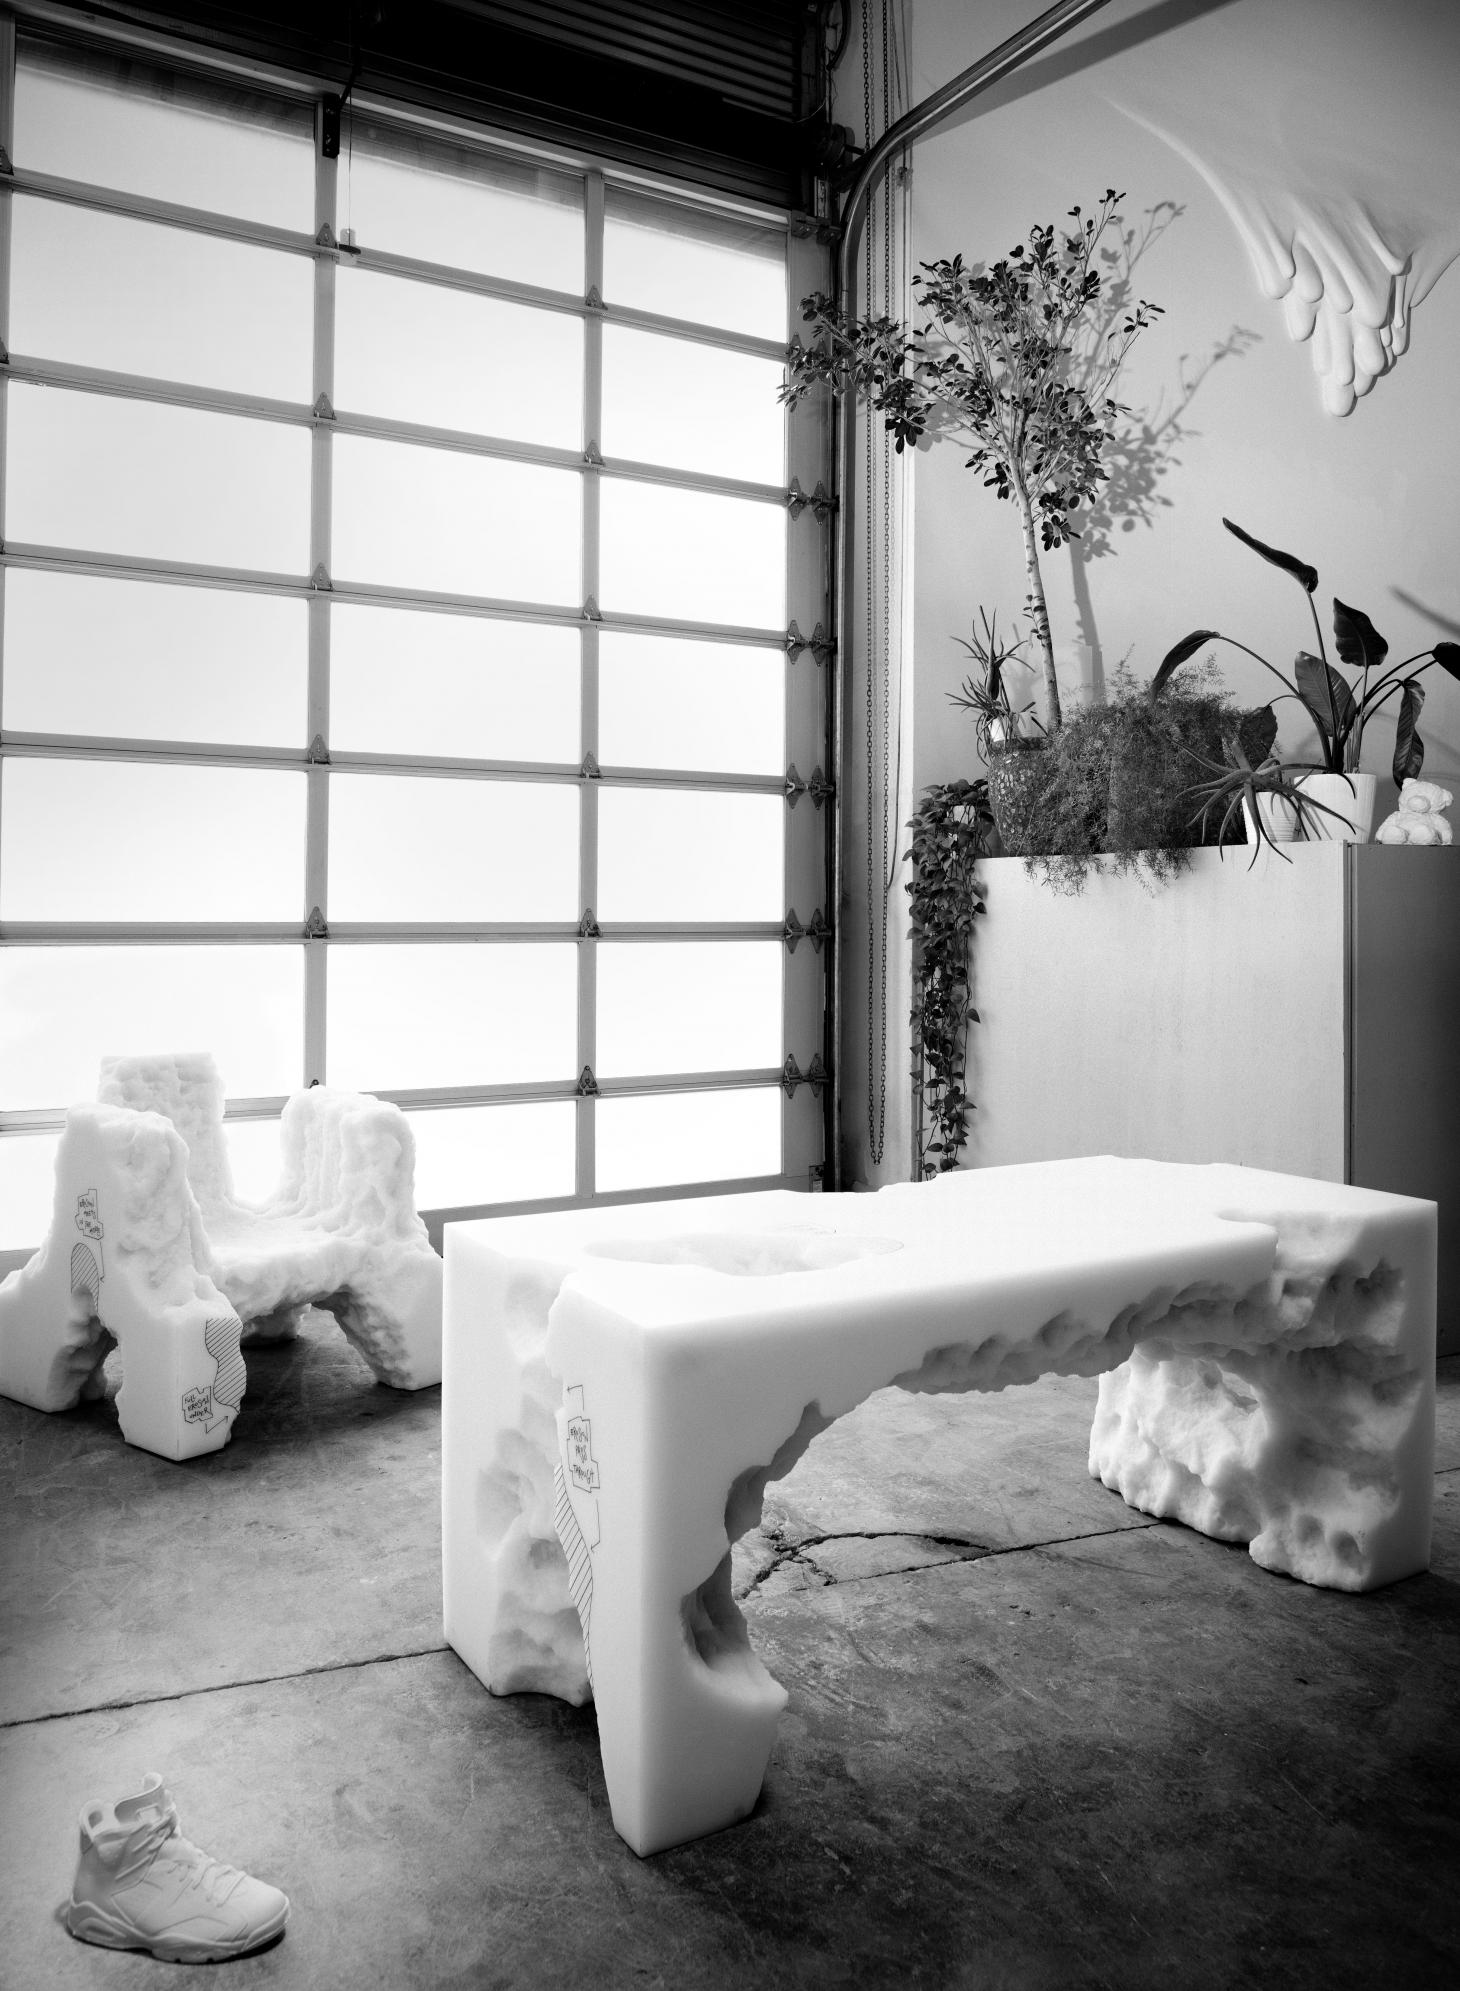 Black and white photograph of Daniel Arsham furniture, including a white resin table and chair whose design looks like eroded rock